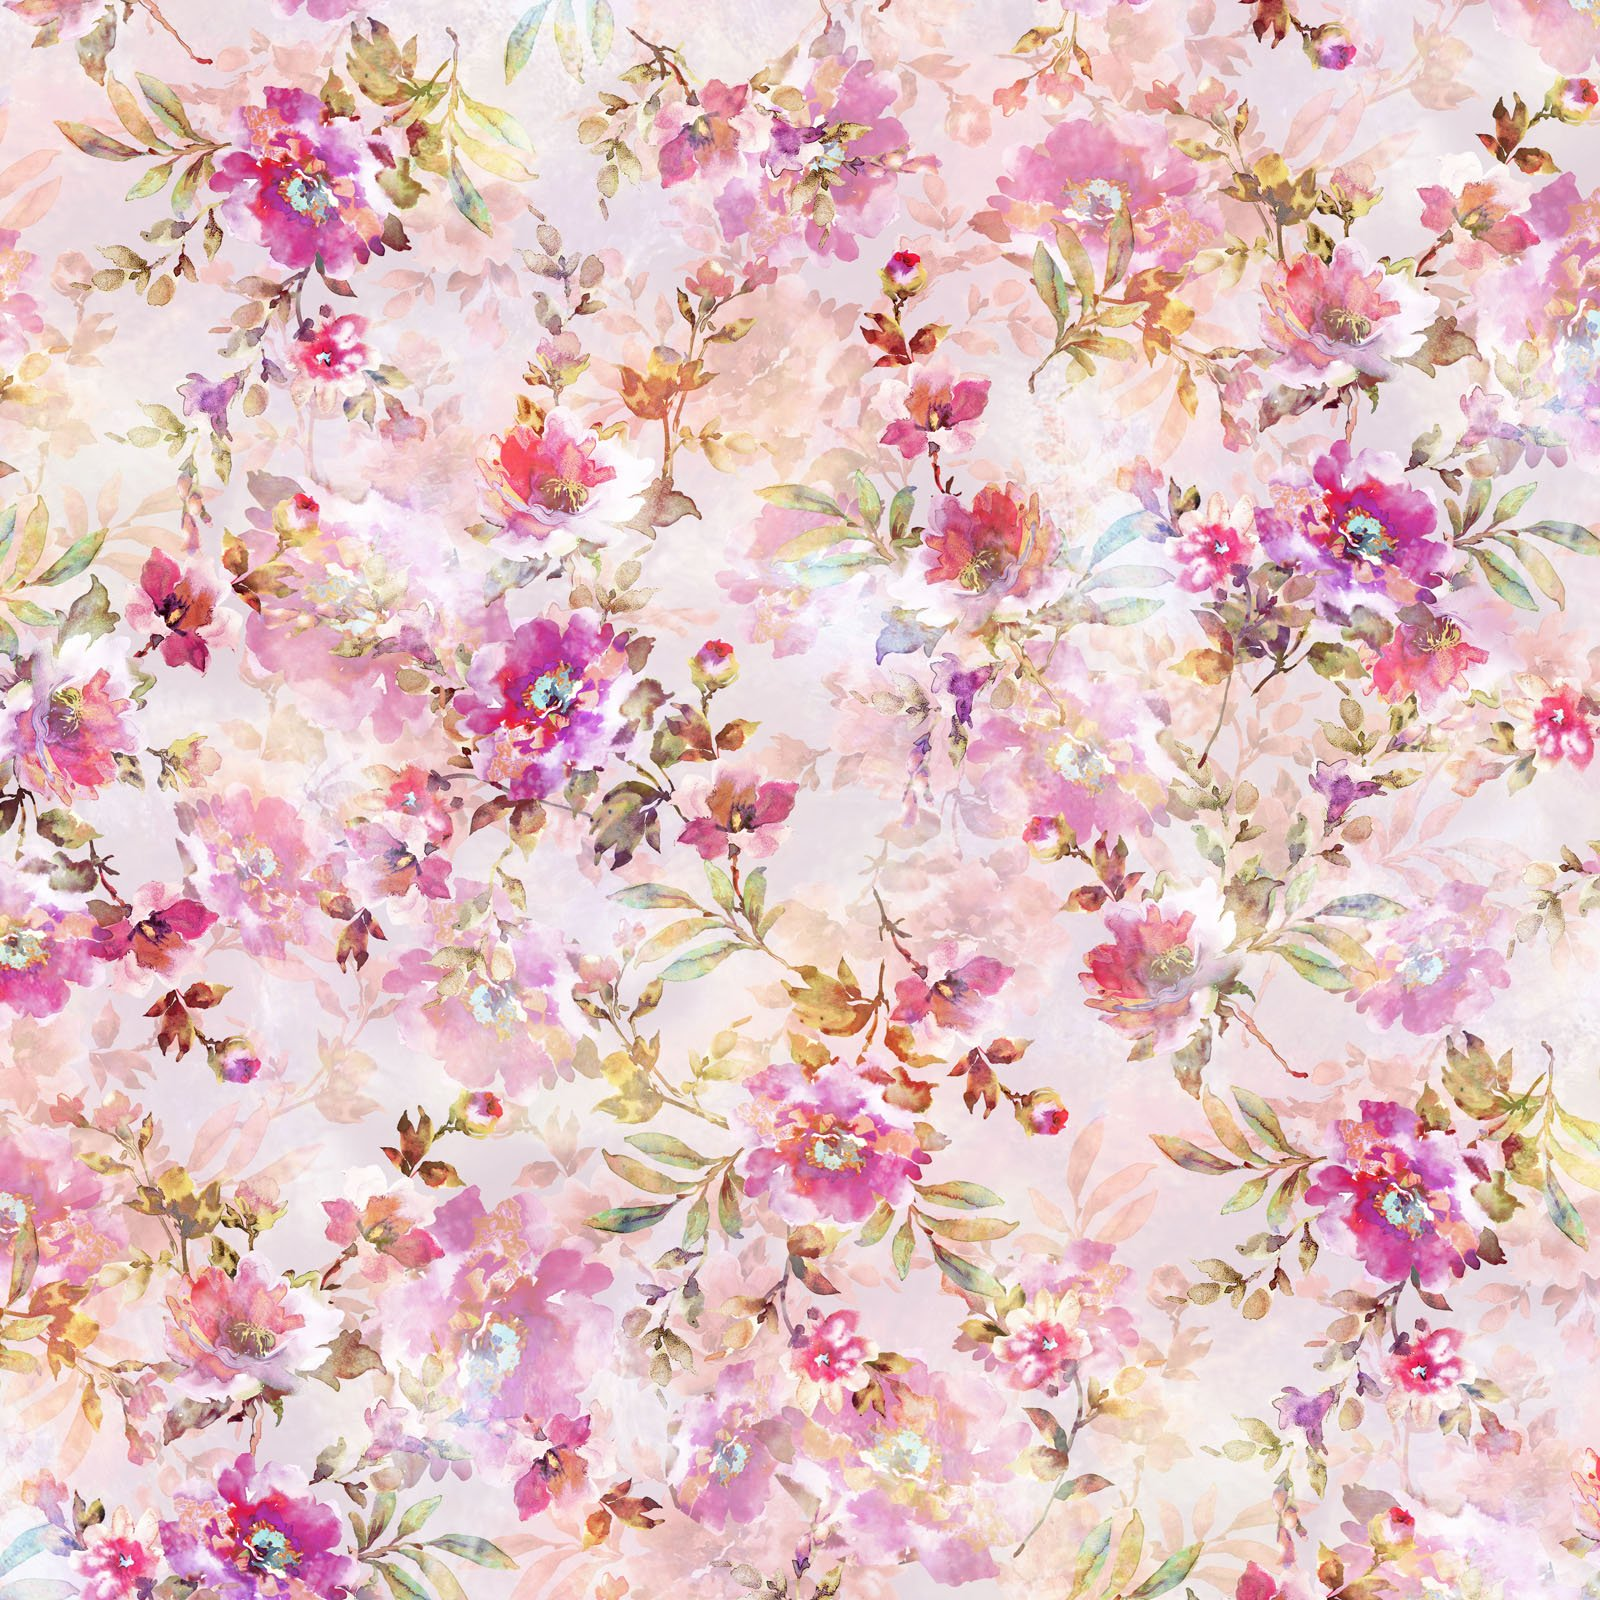 SOPH-4401 P - SOPHIA 108 BY P&B BOUTIQUE FLORAL PINK - AVAILABLE TO ORDER